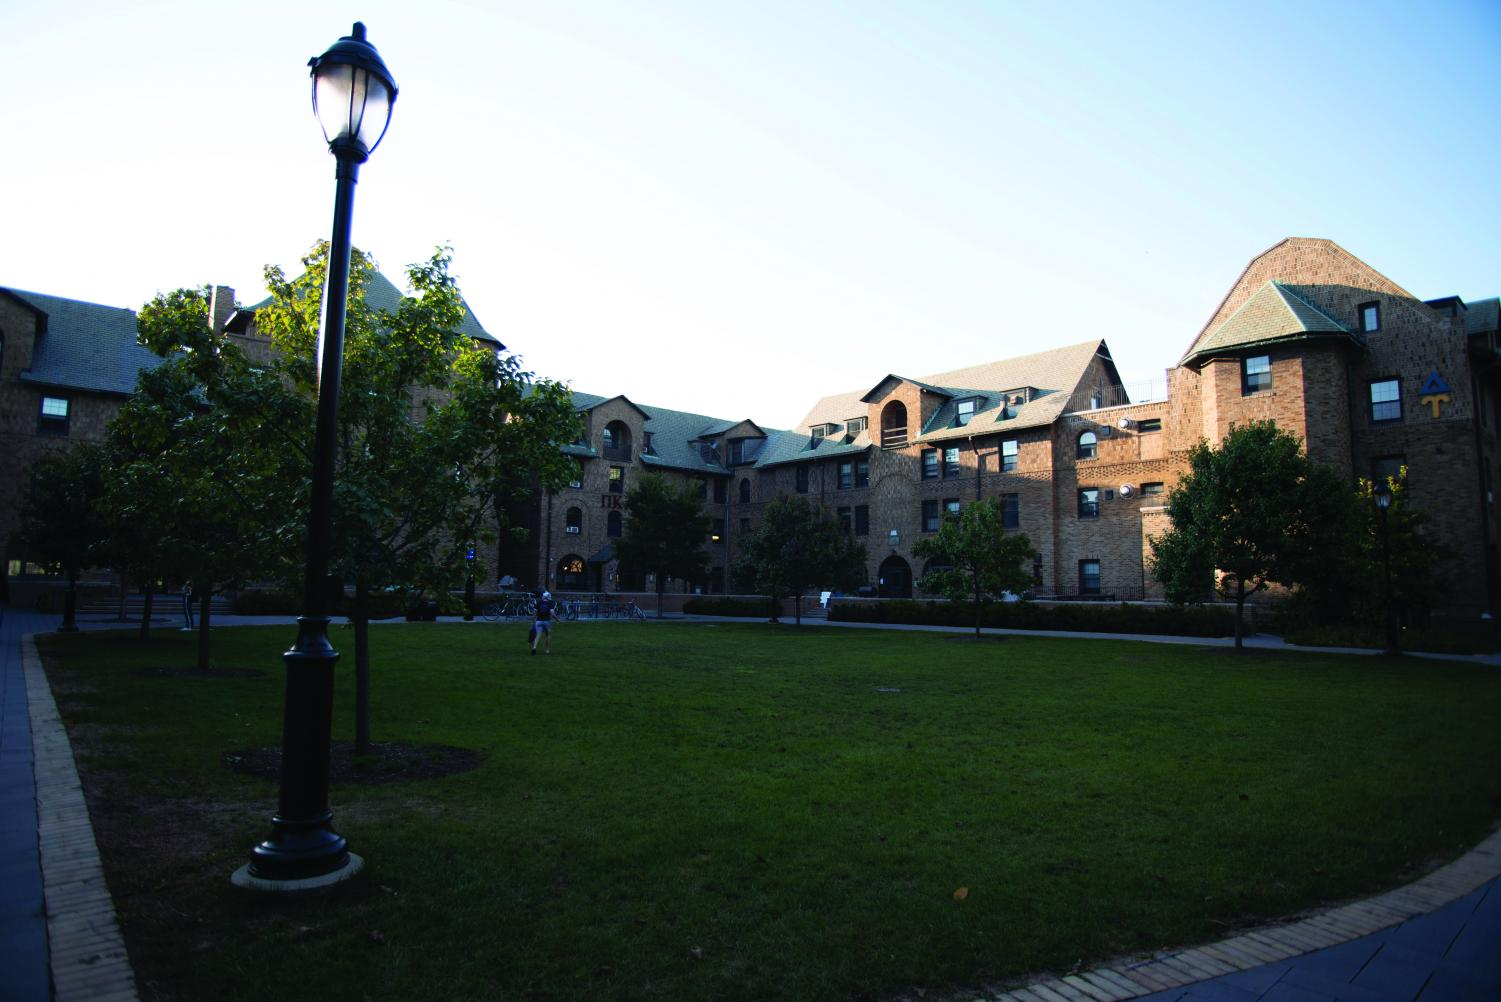 IFC, under new leadership, reversed its earlier decision to derecognize SAE until 2021. The announcement comes after months of uncertainty about how the fraternity would operate without recognition from the governing body.